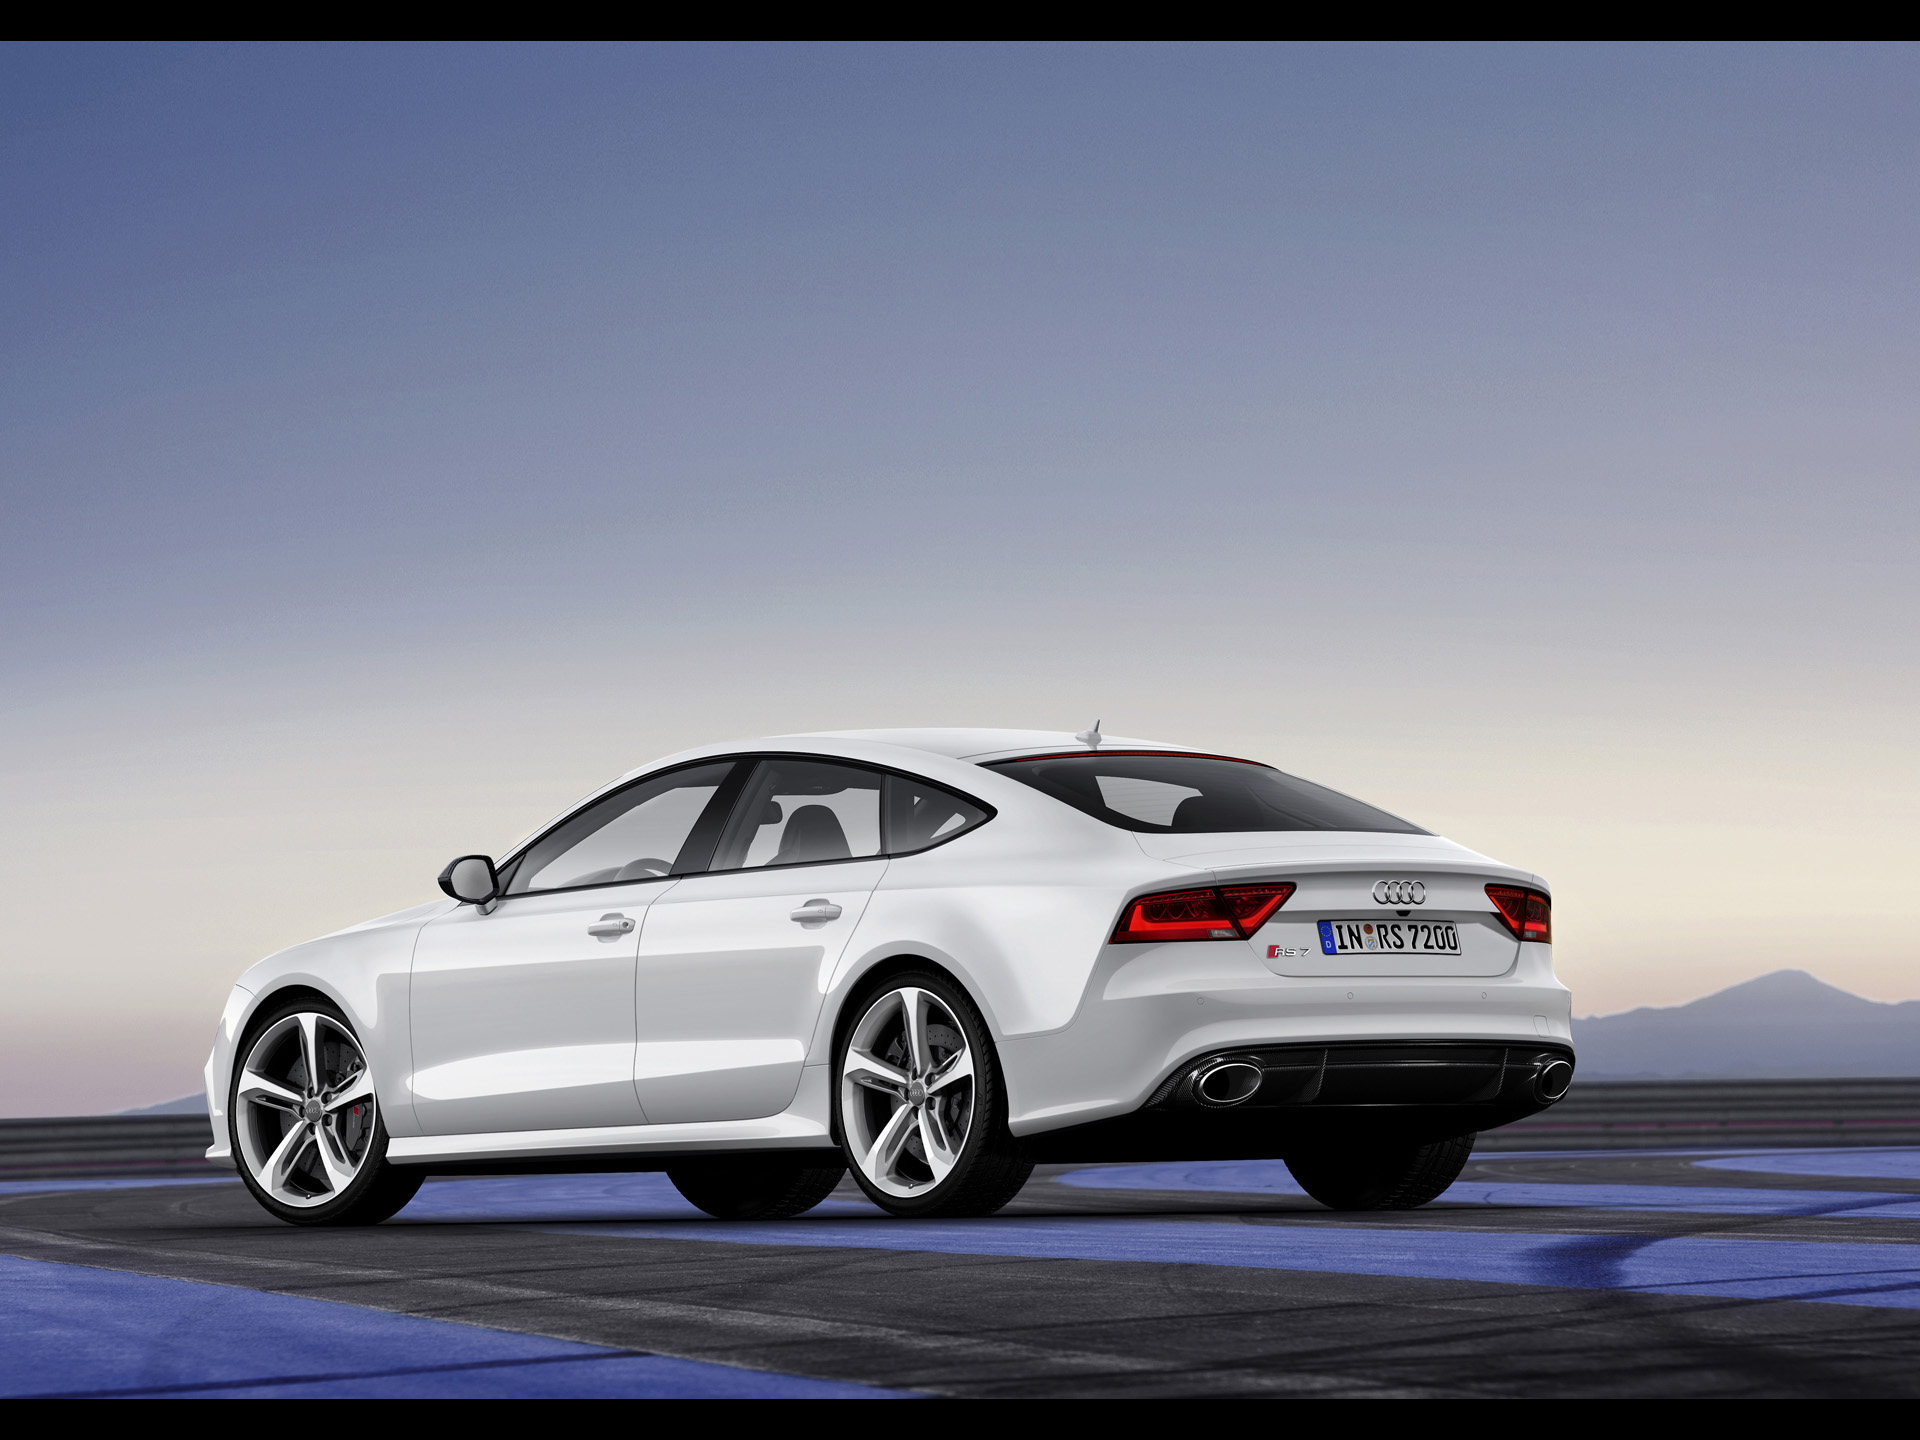 click to free download the wallpaper--Super Cars Photo of Audi RS 7, from Rear Angle, Qualifies for a Great Car  1920X1440 free wallpaper download